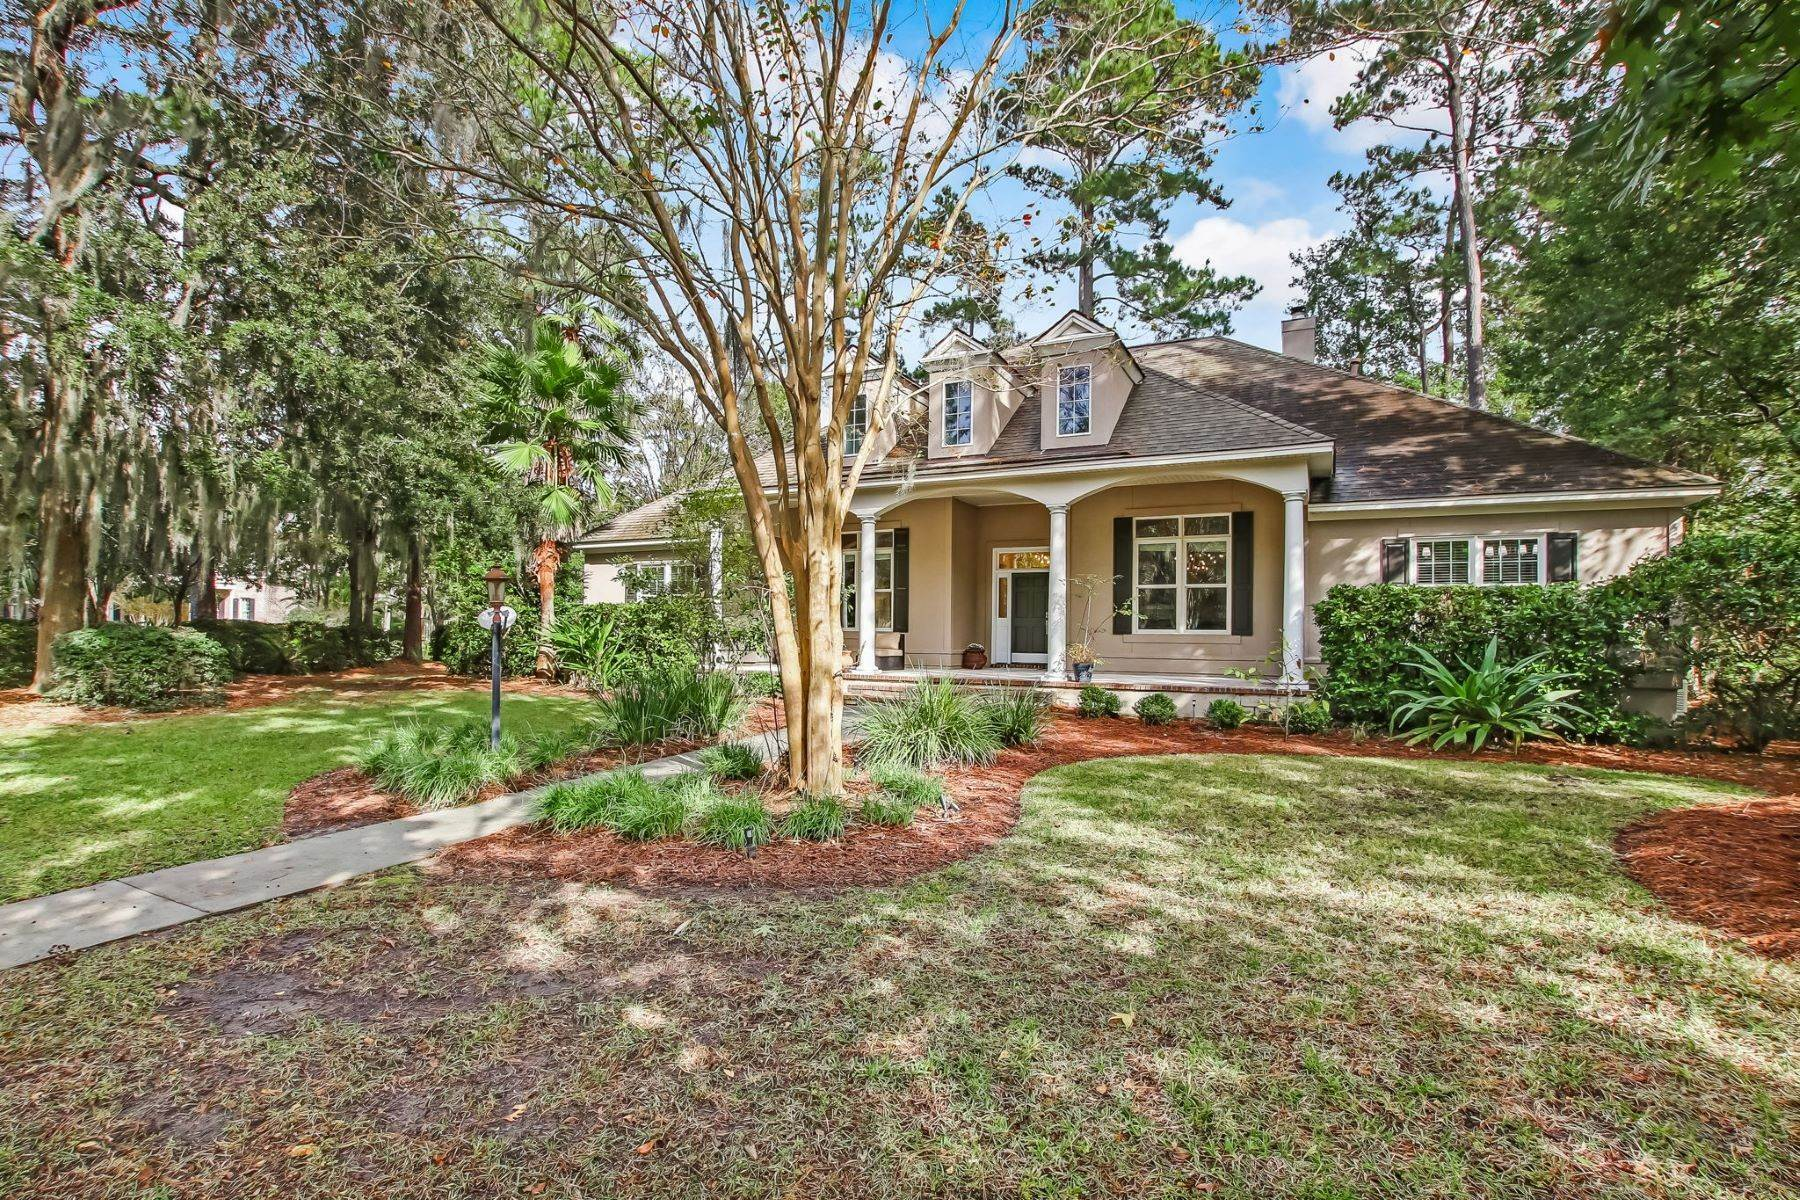 30. Single Family Homes for Sale at 102 Hedge Nettle Crossing Savannah, Georgia 31406 United States